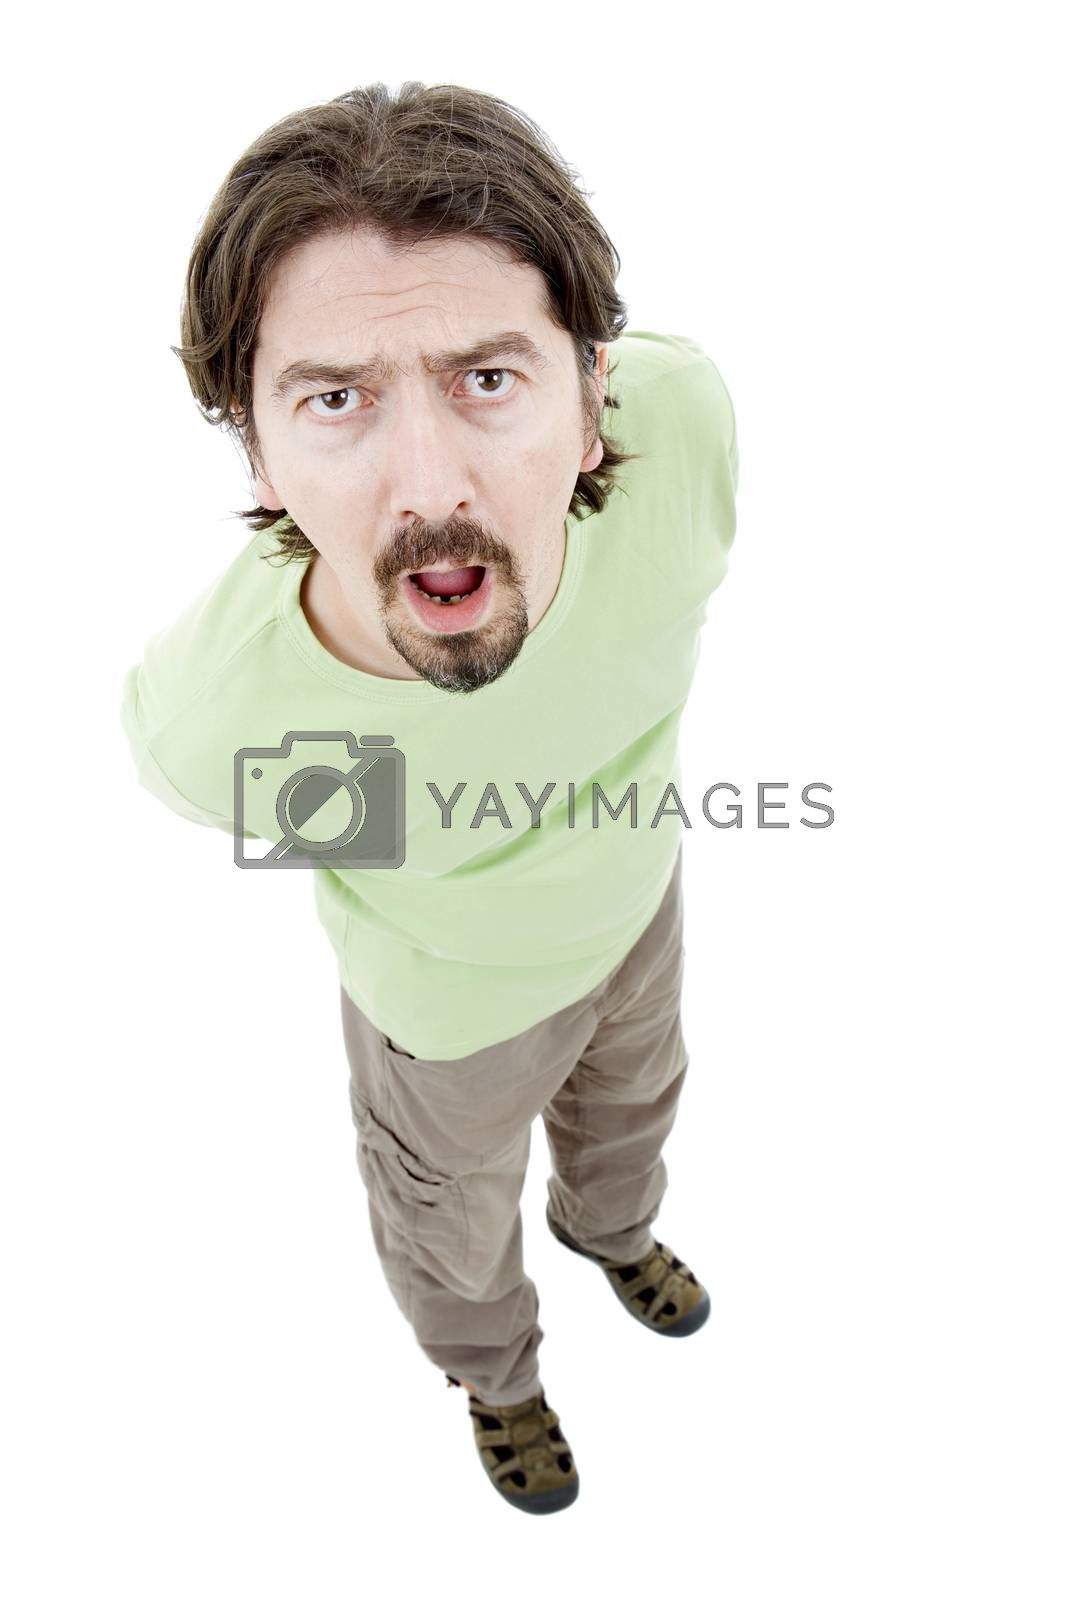 Royalty free image of man full body by zittto